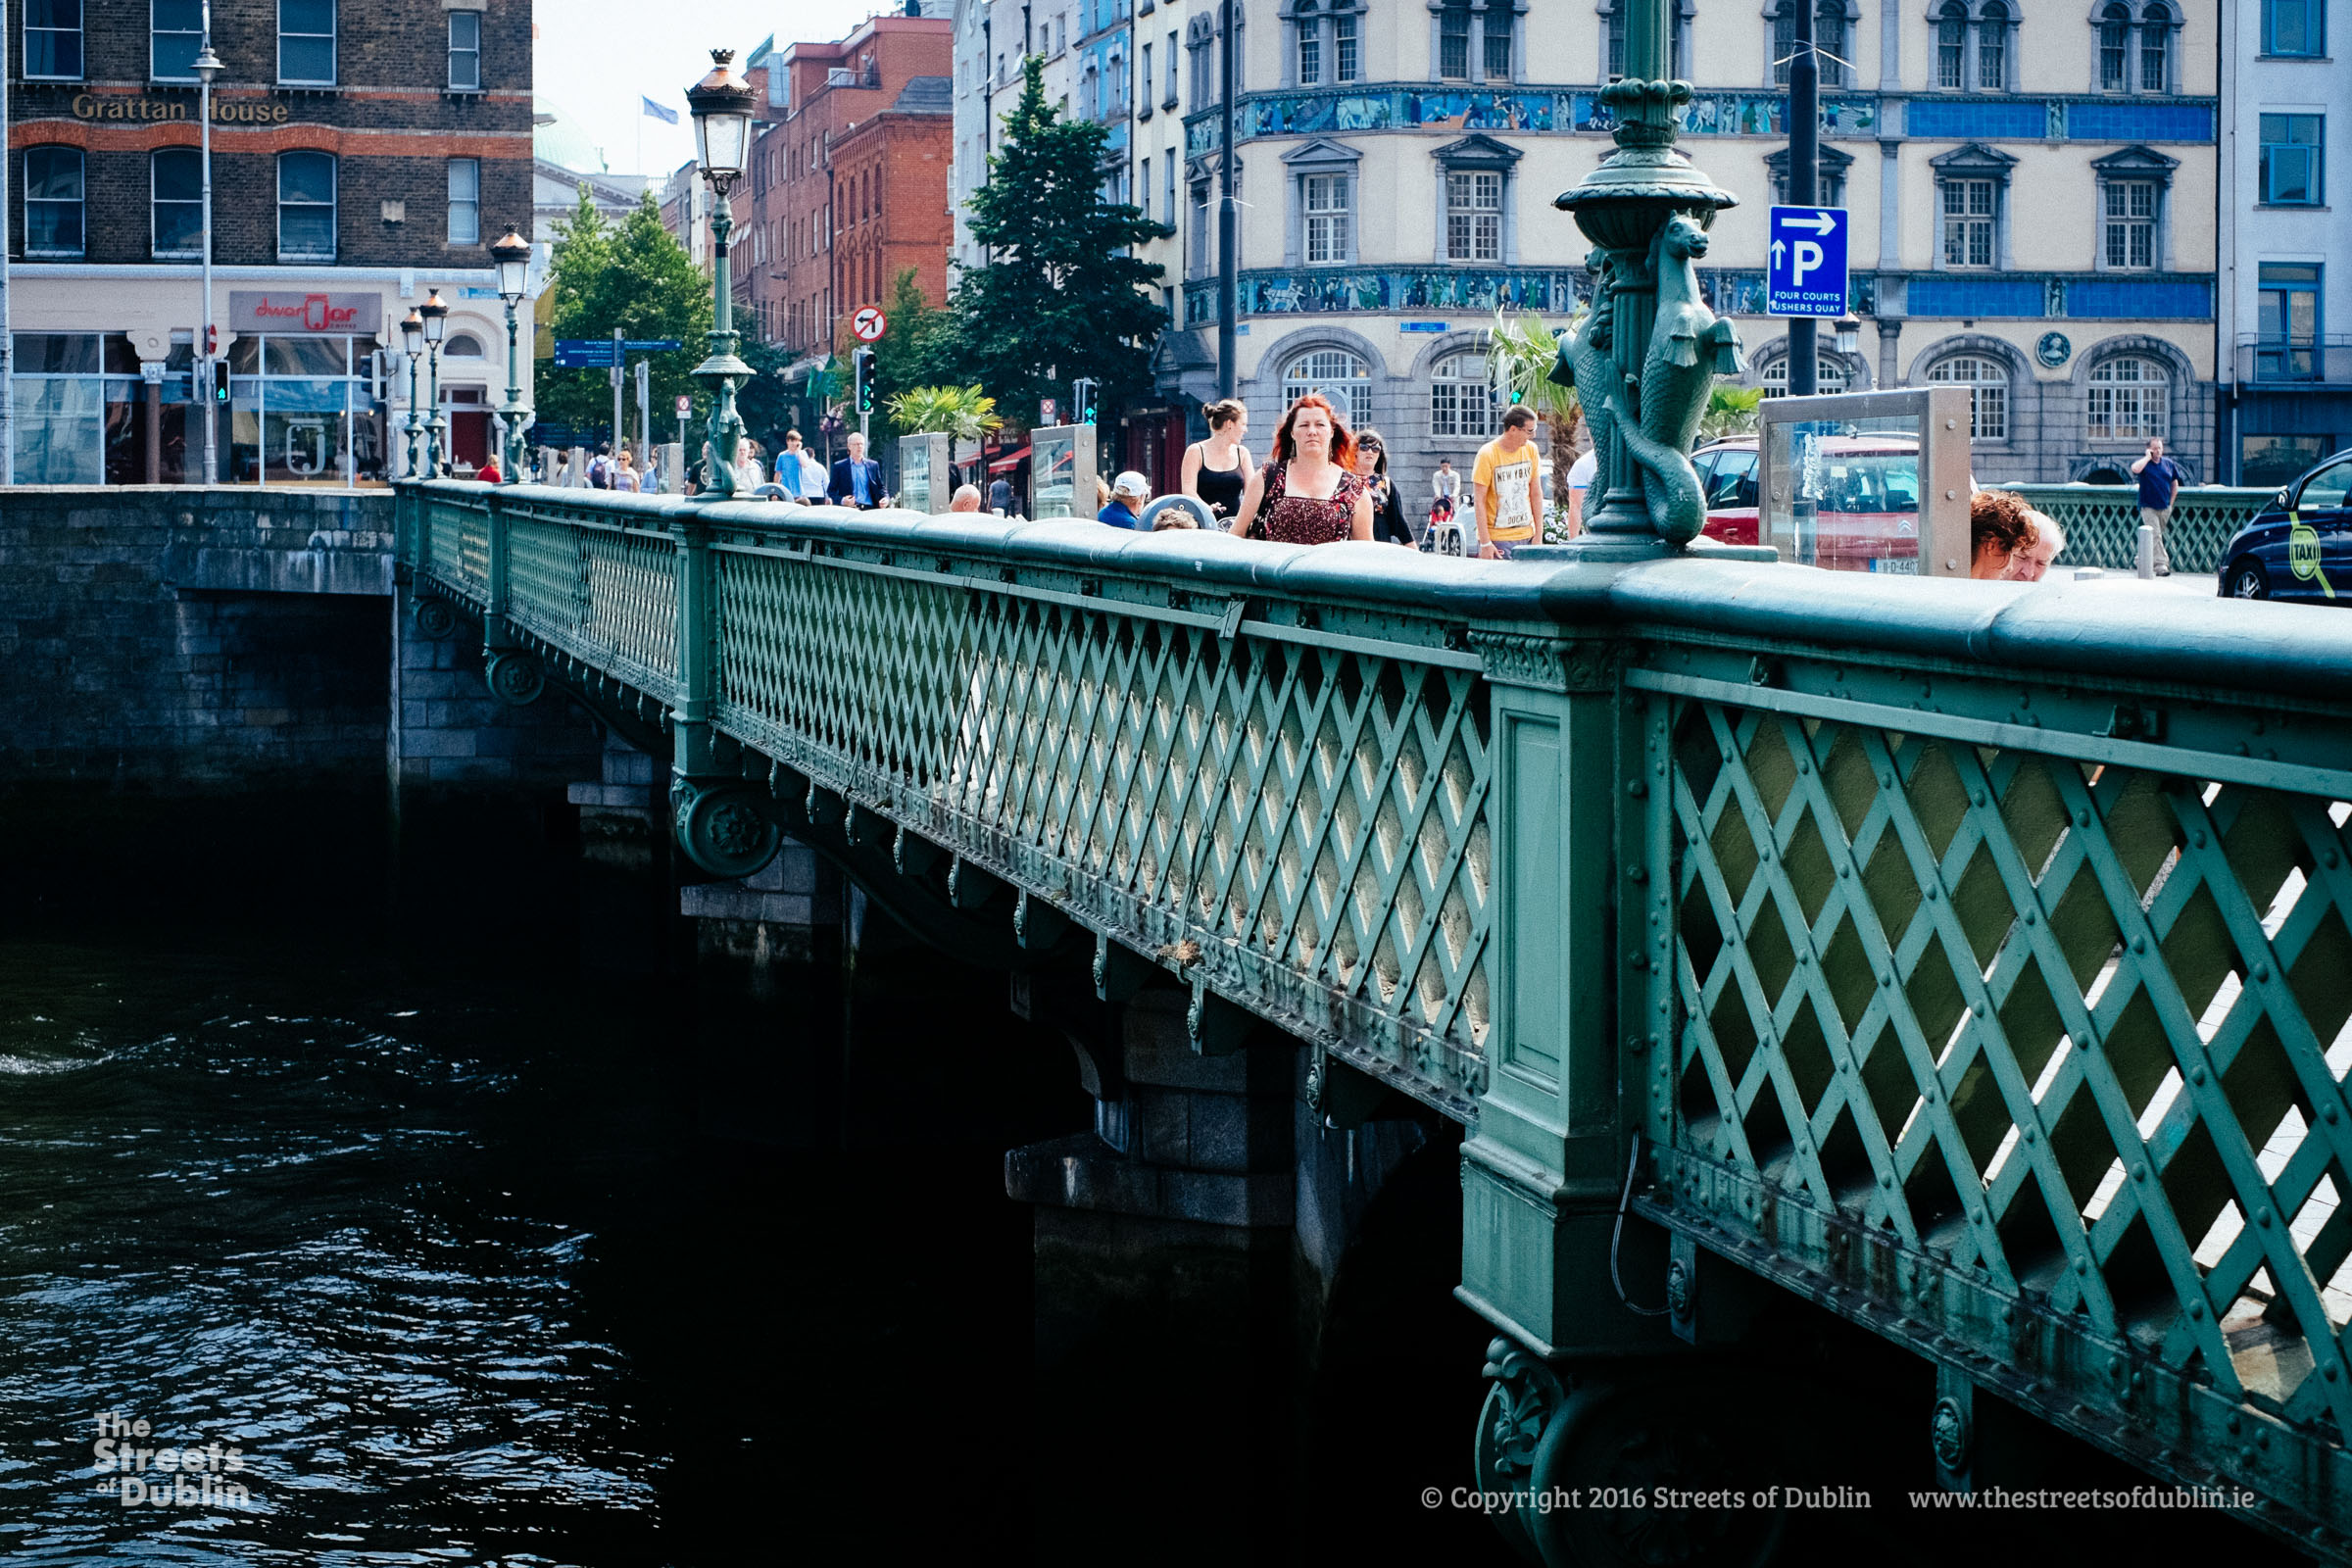 Streets-of-Dublin-Photo-3697.jpg